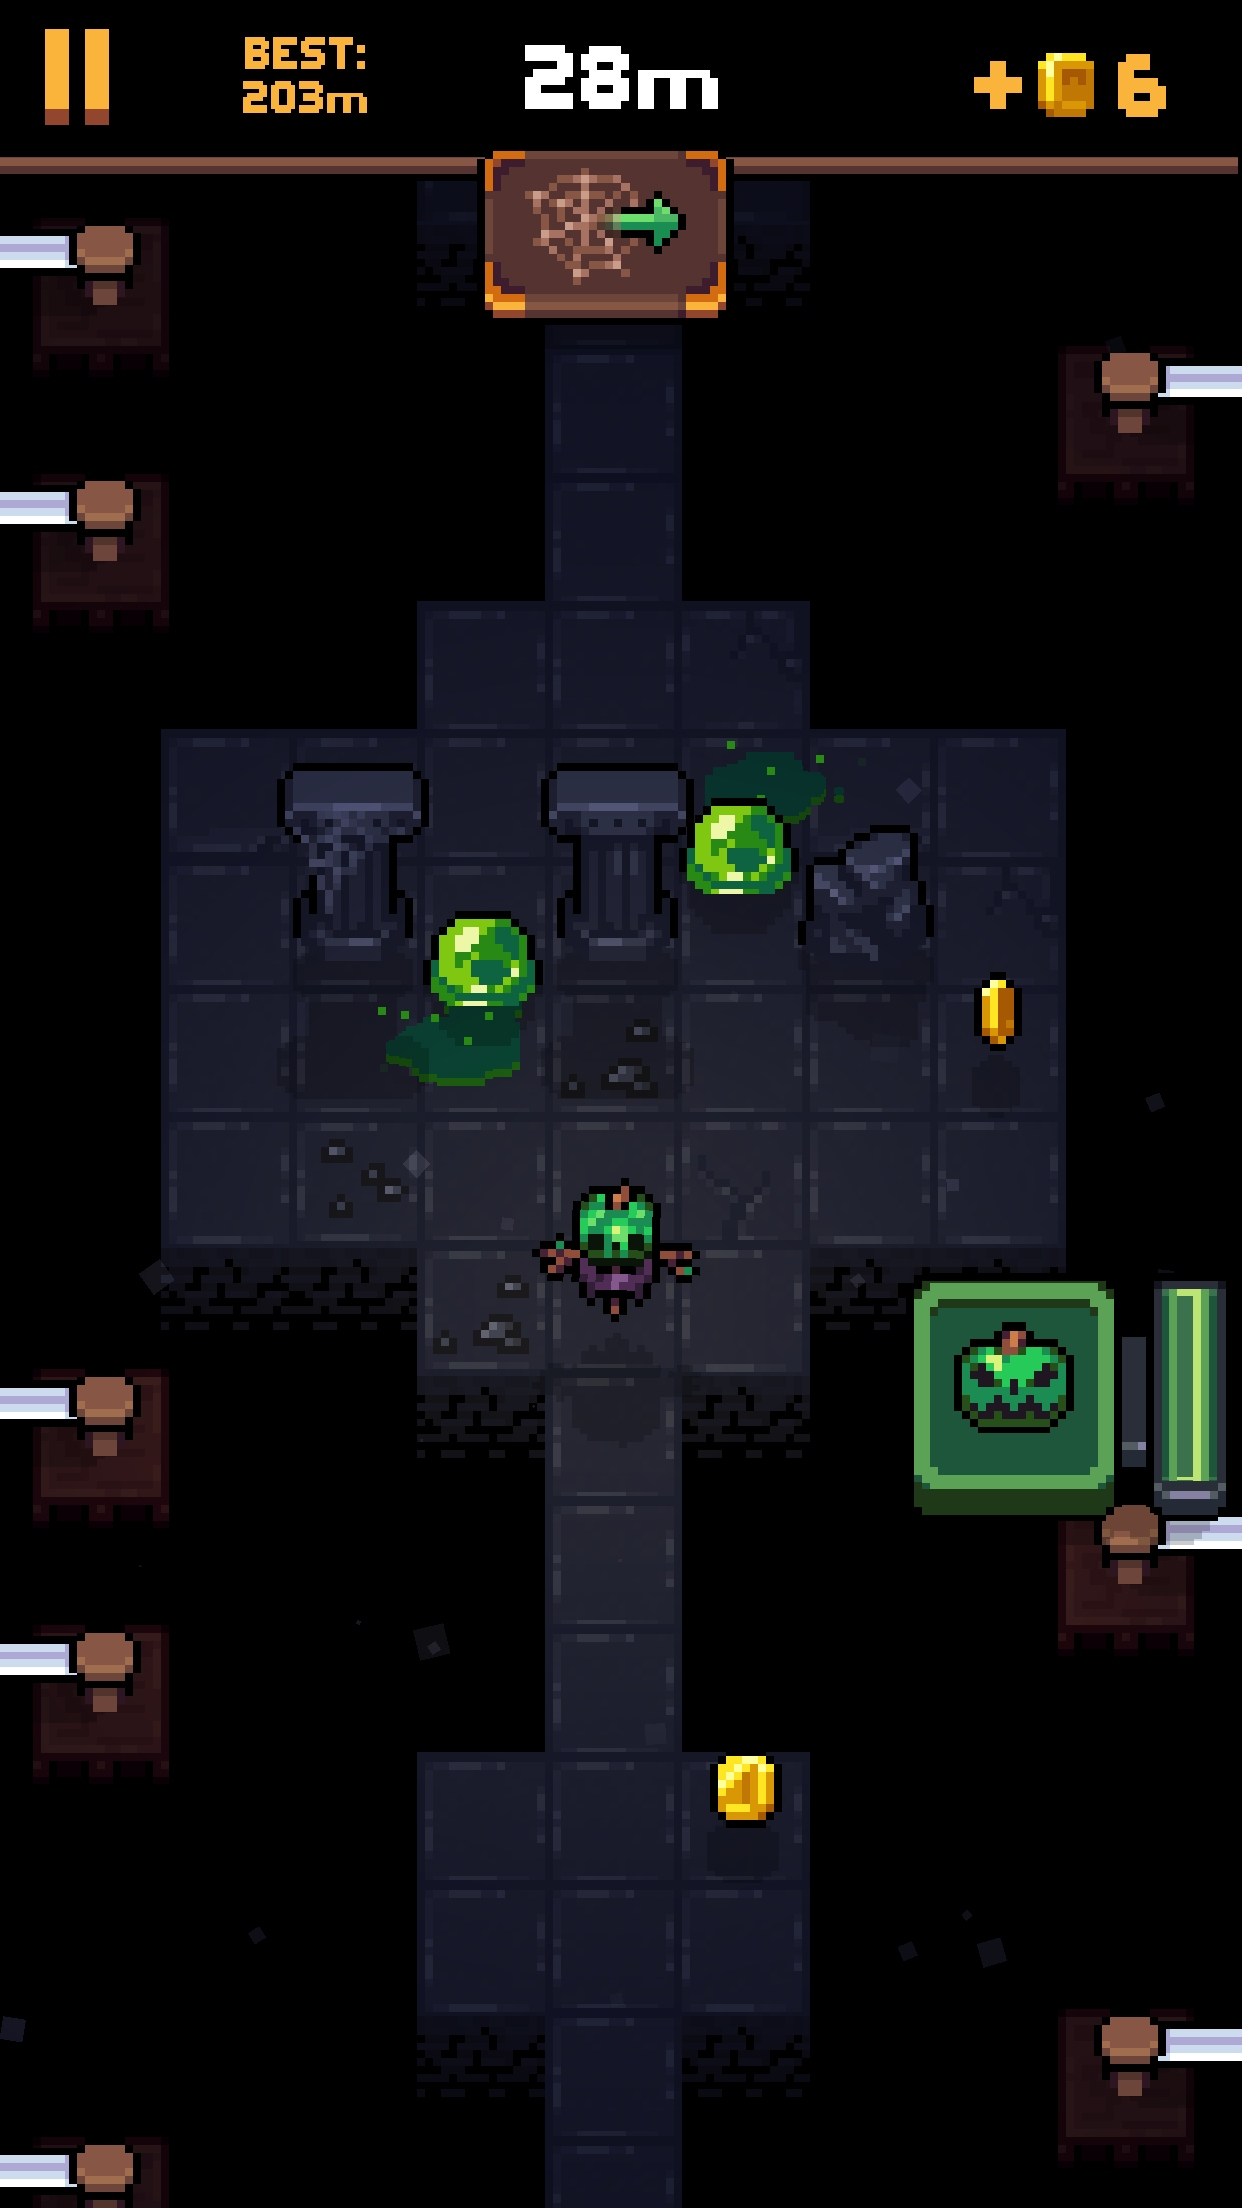 Redungeon - I'd let you Redungeon me any time, pal